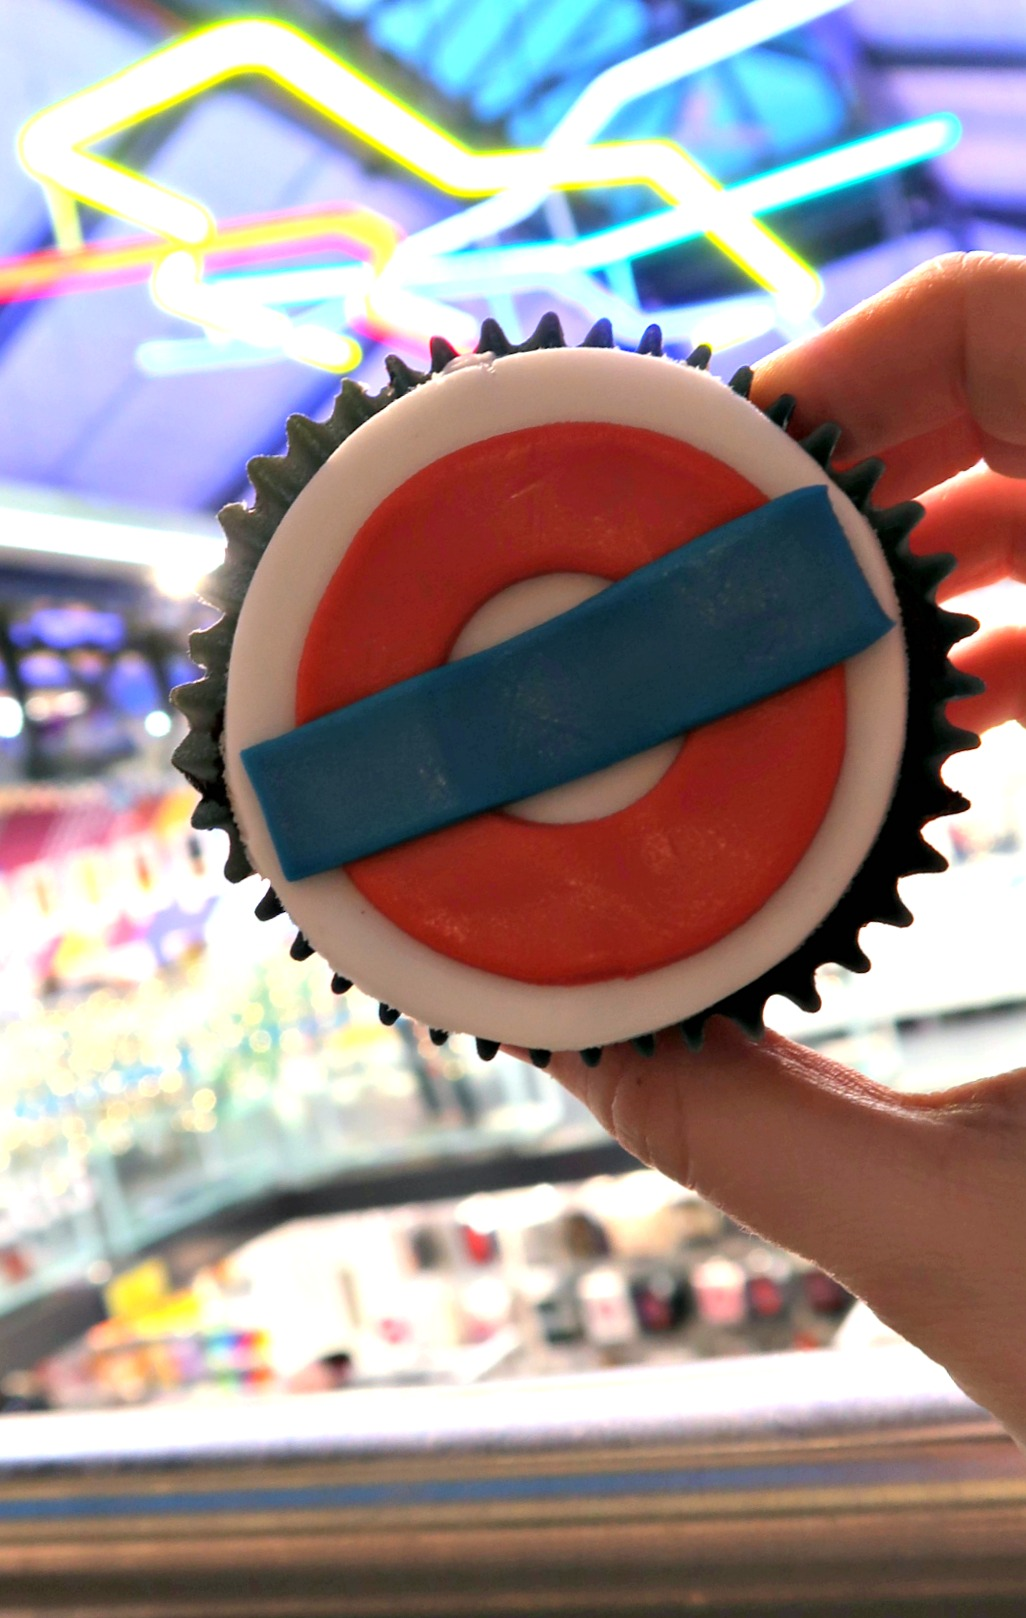 London Transport Museum cupcakes